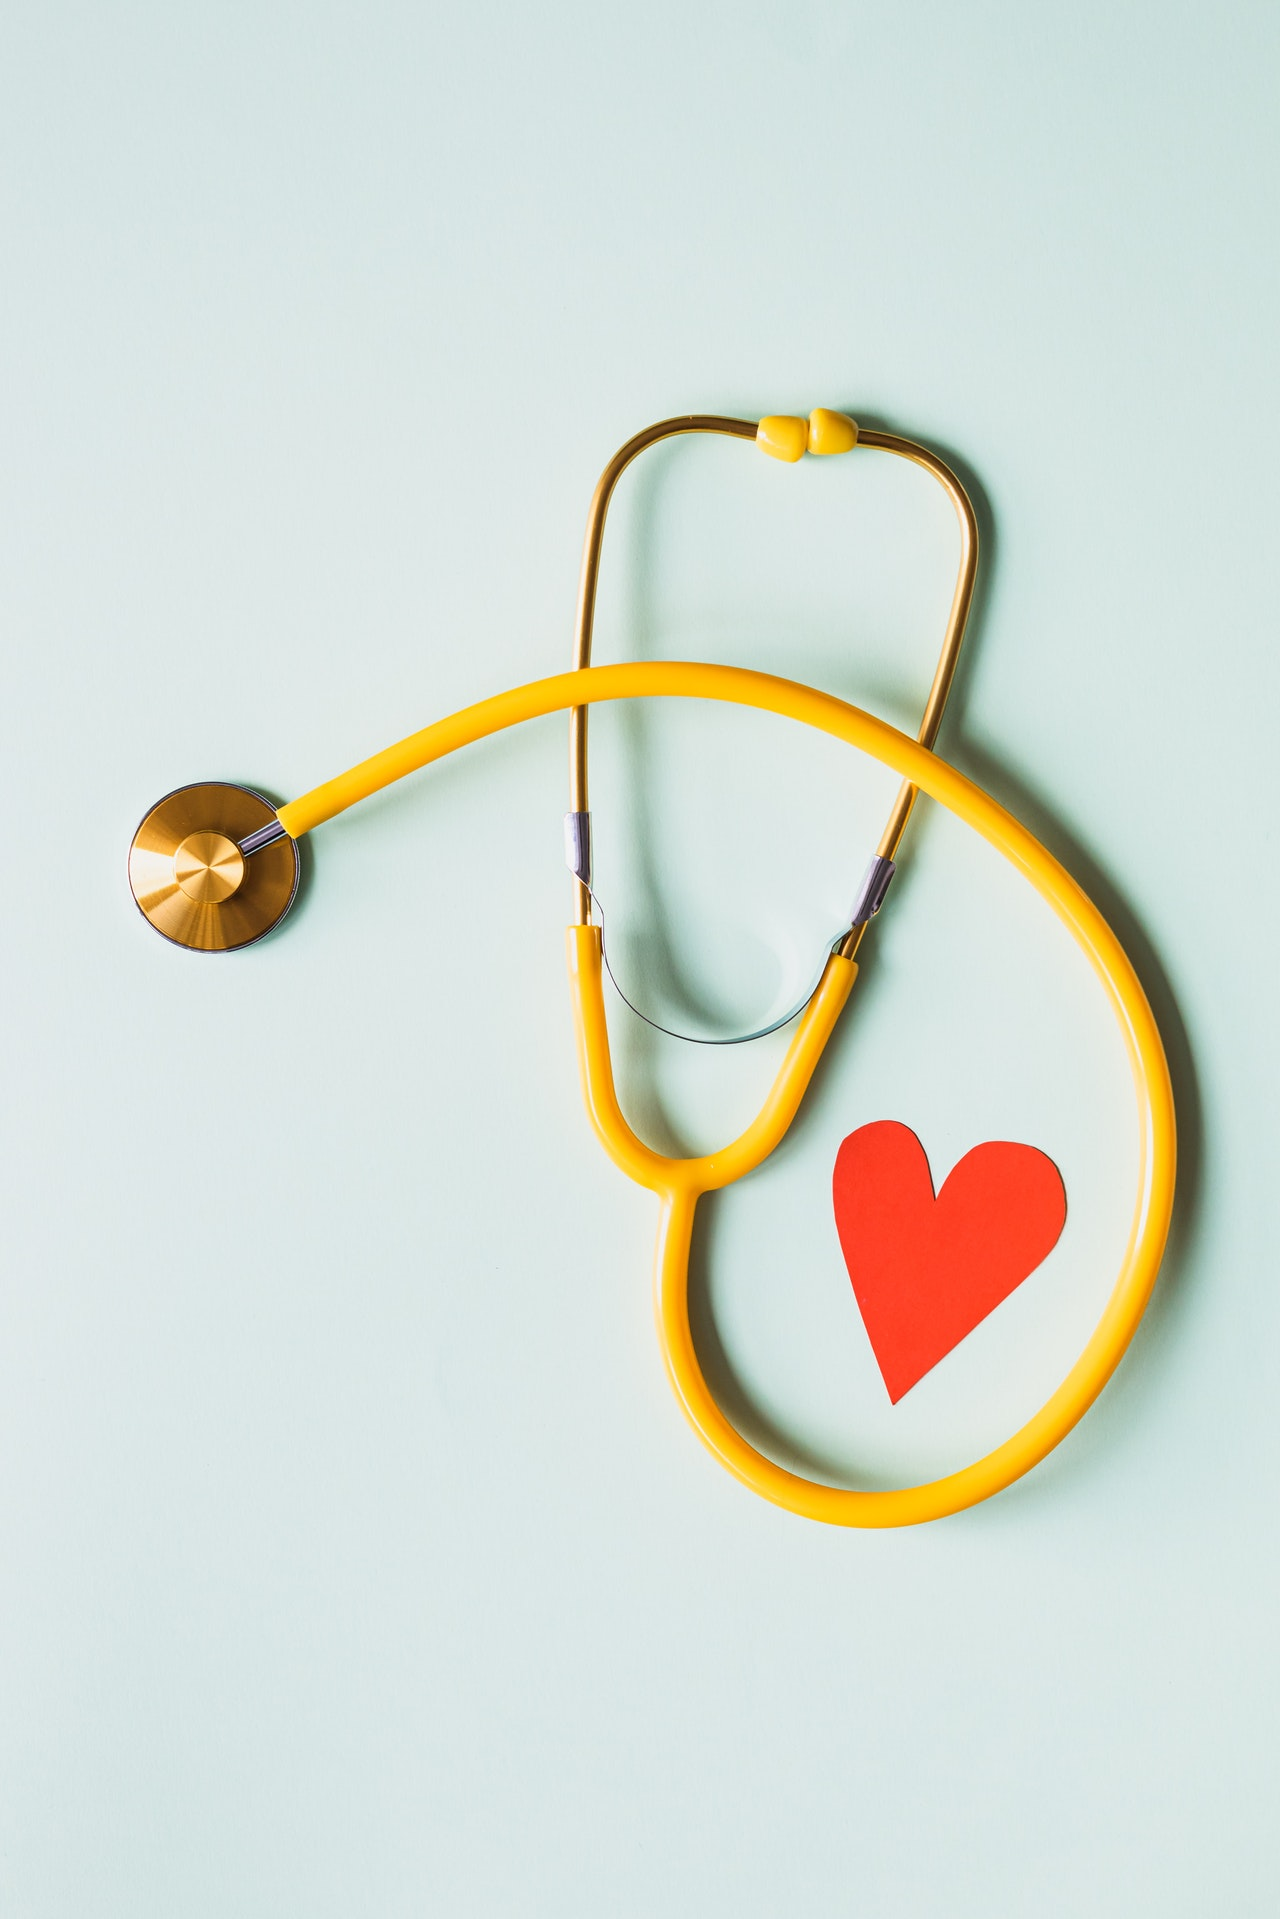 Vascular Specialists – Specialists in Treating Heart Disorders in Tinley Park, IL